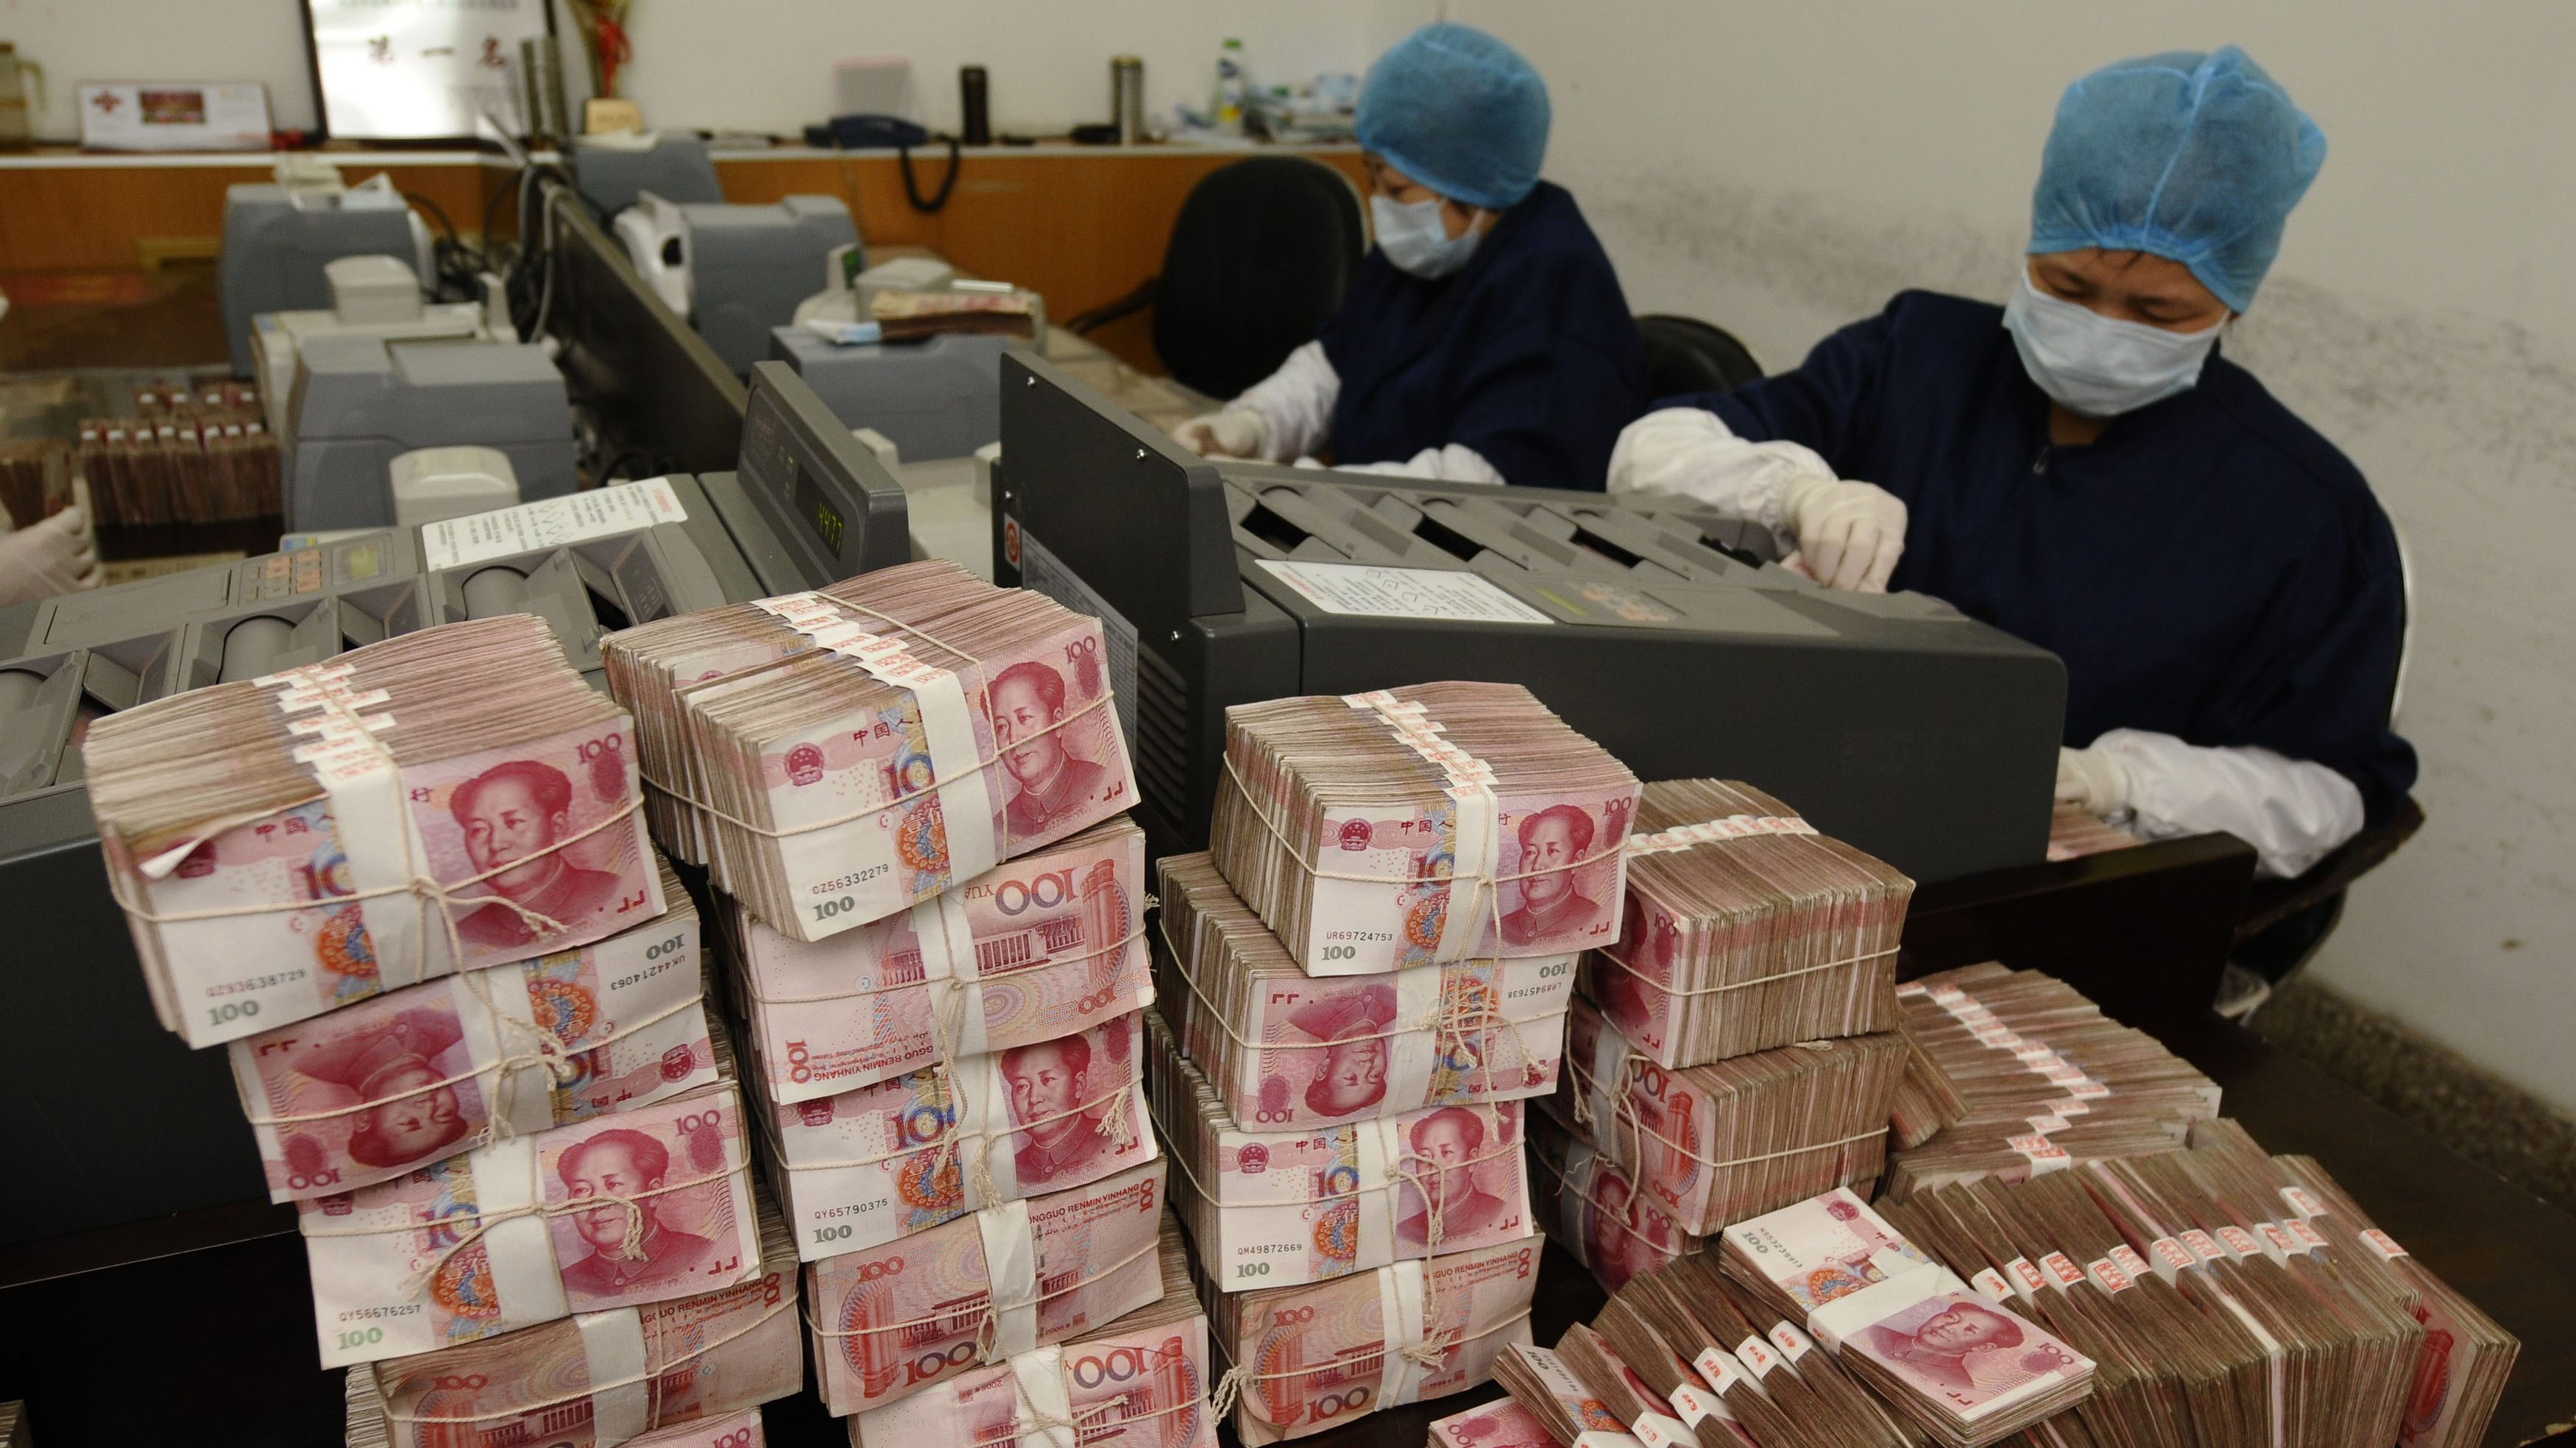 Employees count yuan banknotes at a branch of Bank of China in Changzhi, Shanxi province February 24, 2010. China should adjust the yuan's exchange rate gradually and avoid major fluctuations, a senior political figure said on Wednesday.